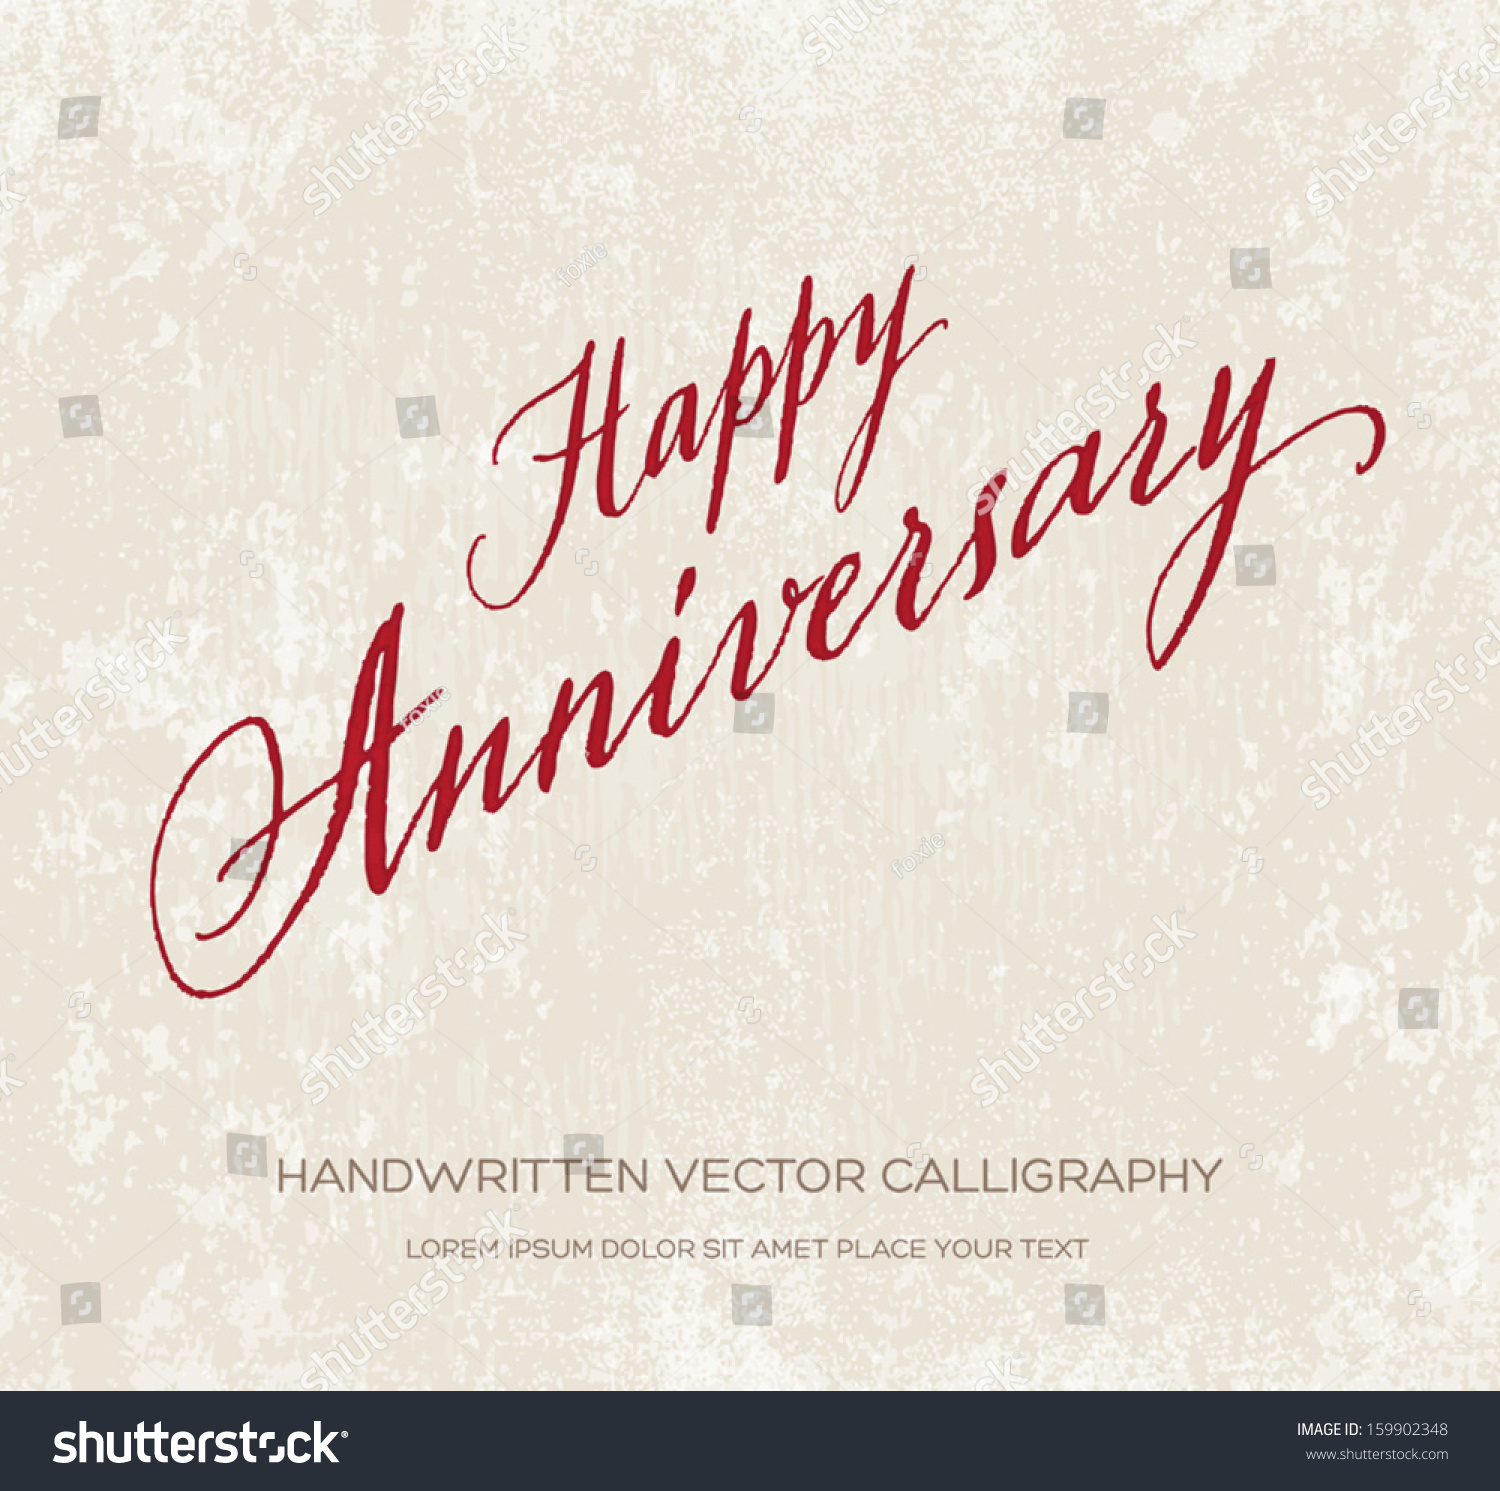 Happy anniversary vector greeting card poster stock